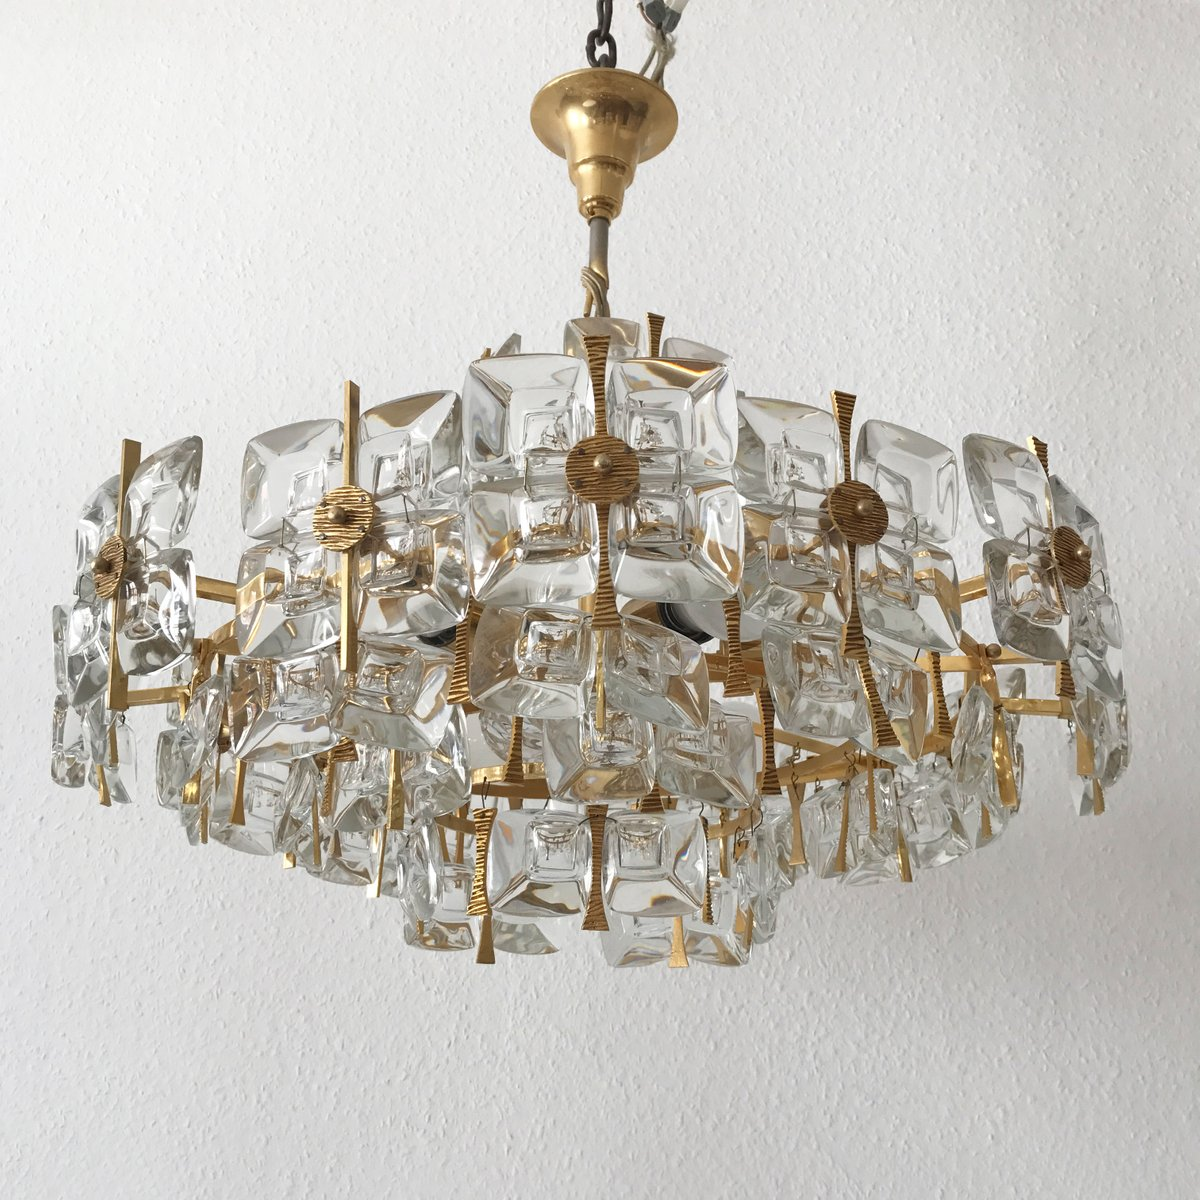 Mid century crystal glass chandelier from palwa 1960s en venta en mid century crystal glass chandelier from palwa 1960s aloadofball Choice Image